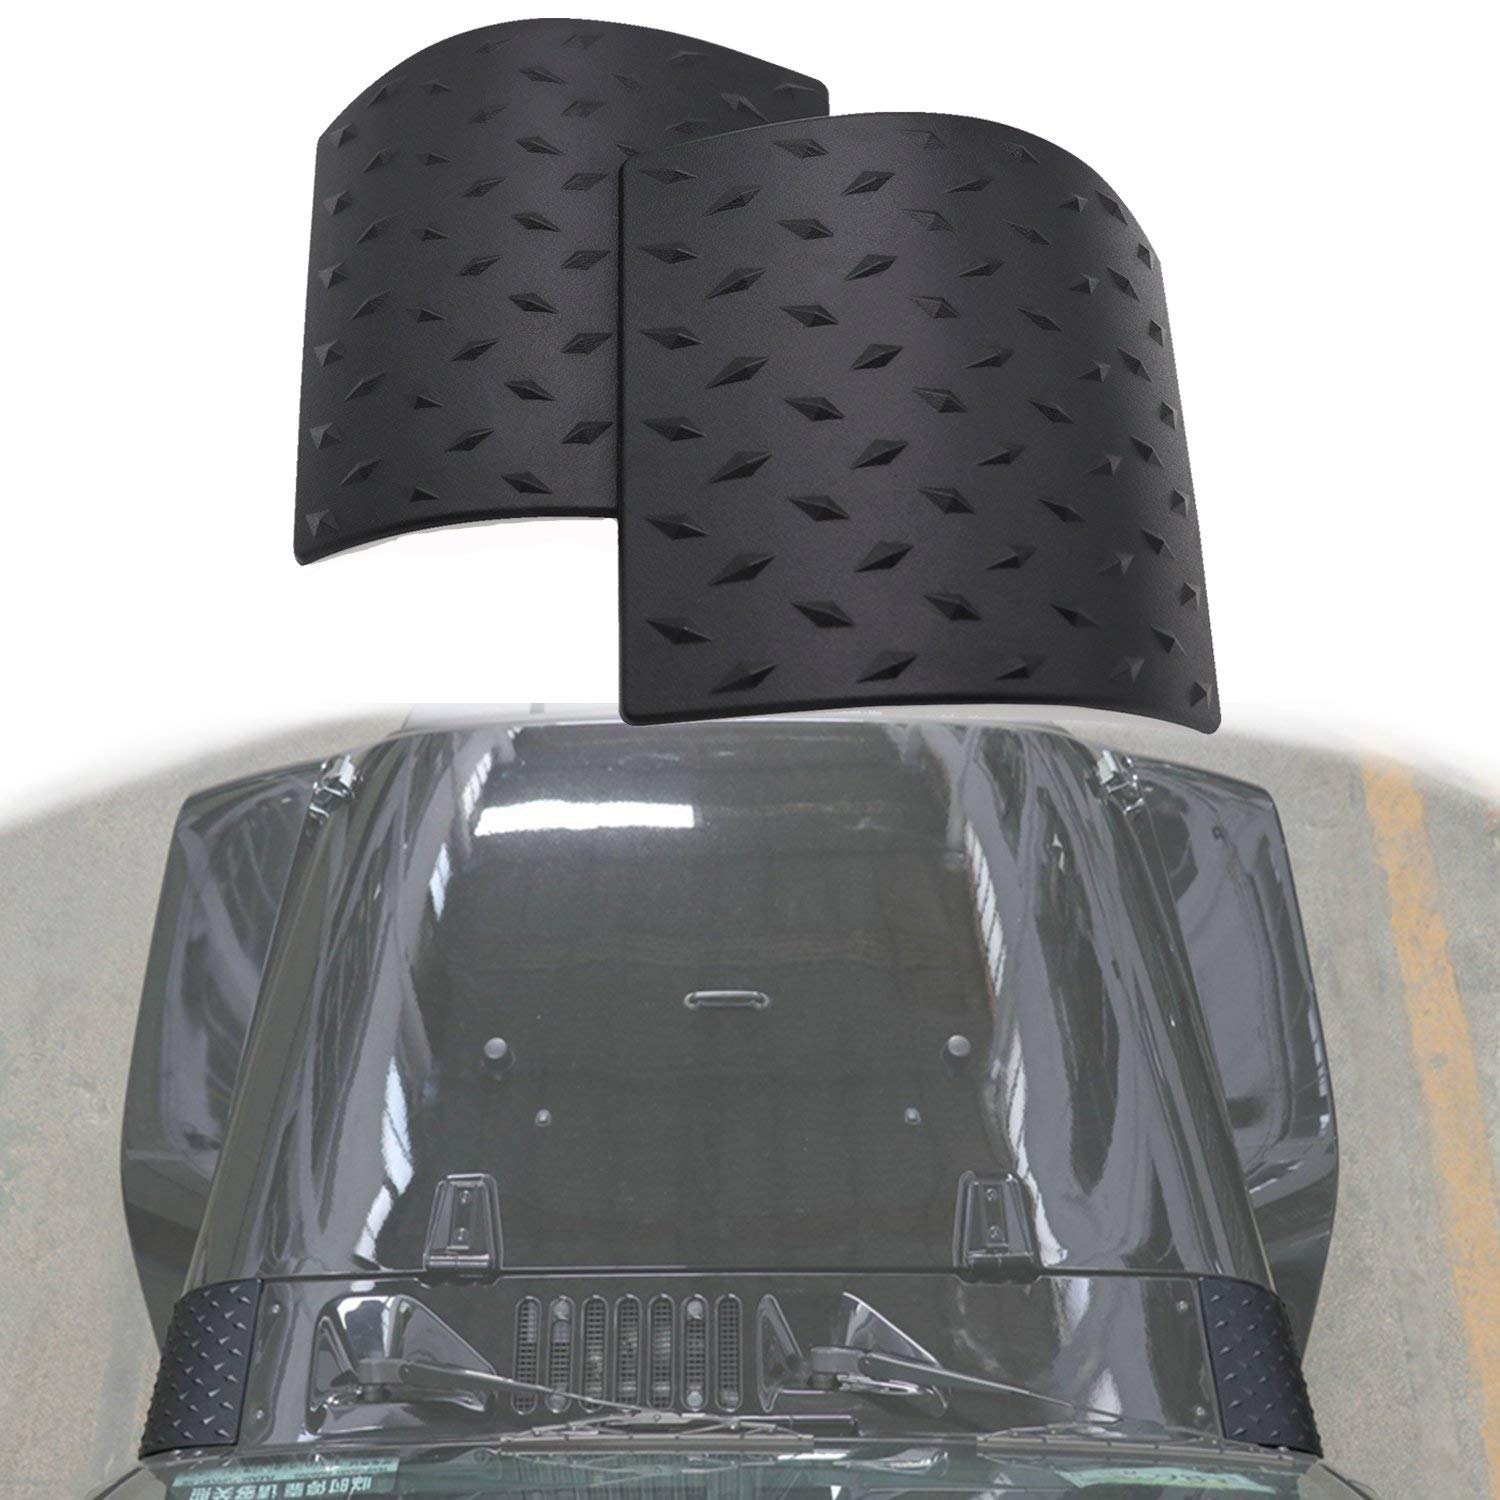 Yoursme Black Cowl Body Armor 2 X ABS Side Cowling Cover Protector Fits for Jeep Wrangler JK JKU Unlimited Rubicon Sahara X Off Road Sport Exterior Accessories Parts 2007-2017